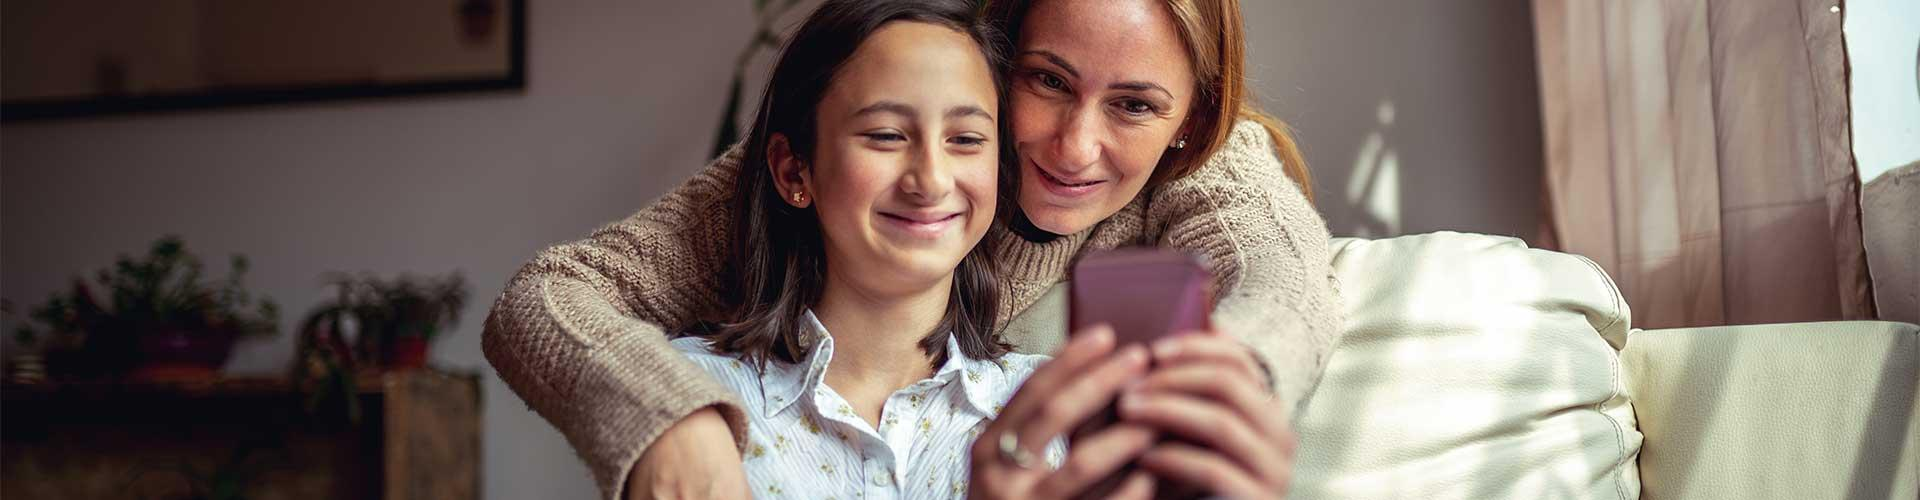 Mom and daughter look at smartphone